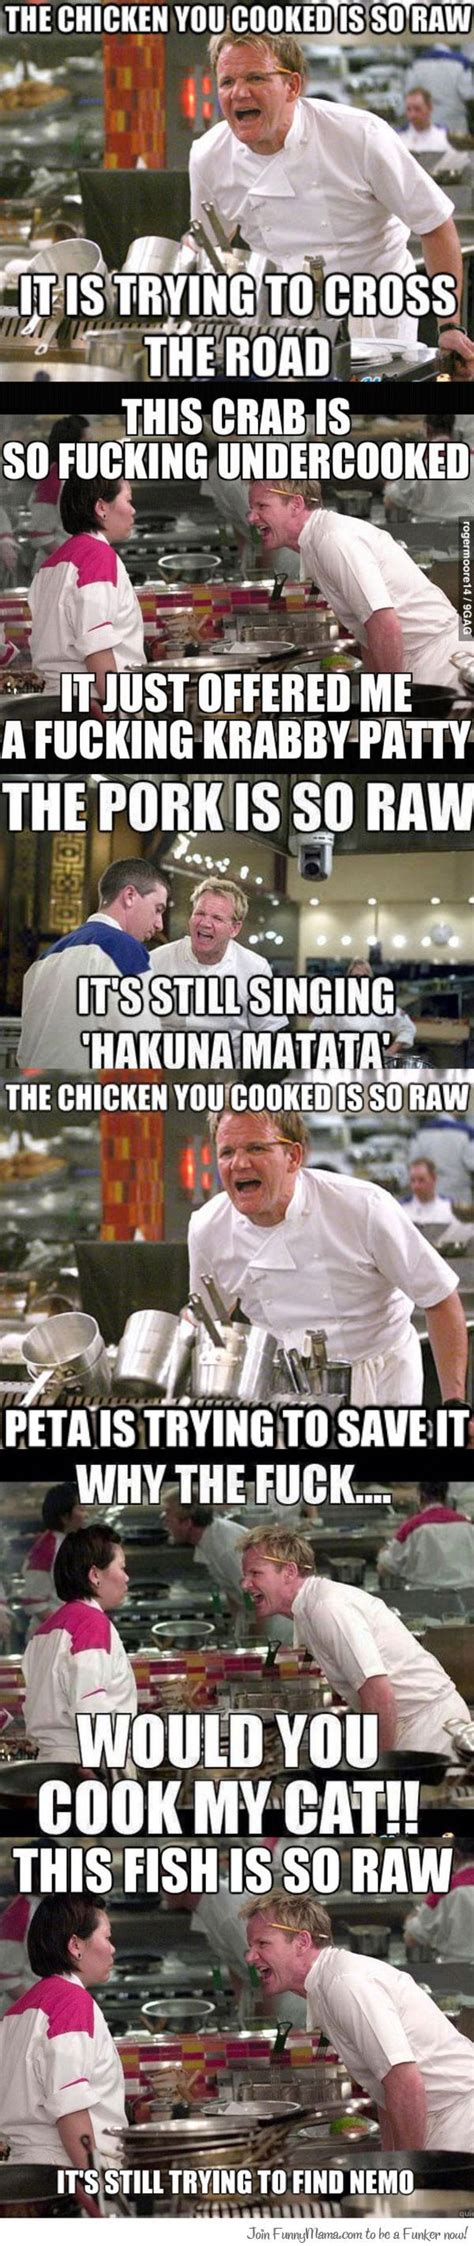 Hells Kitchen Meme - hells kitchen memes disturbingly funny pinterest